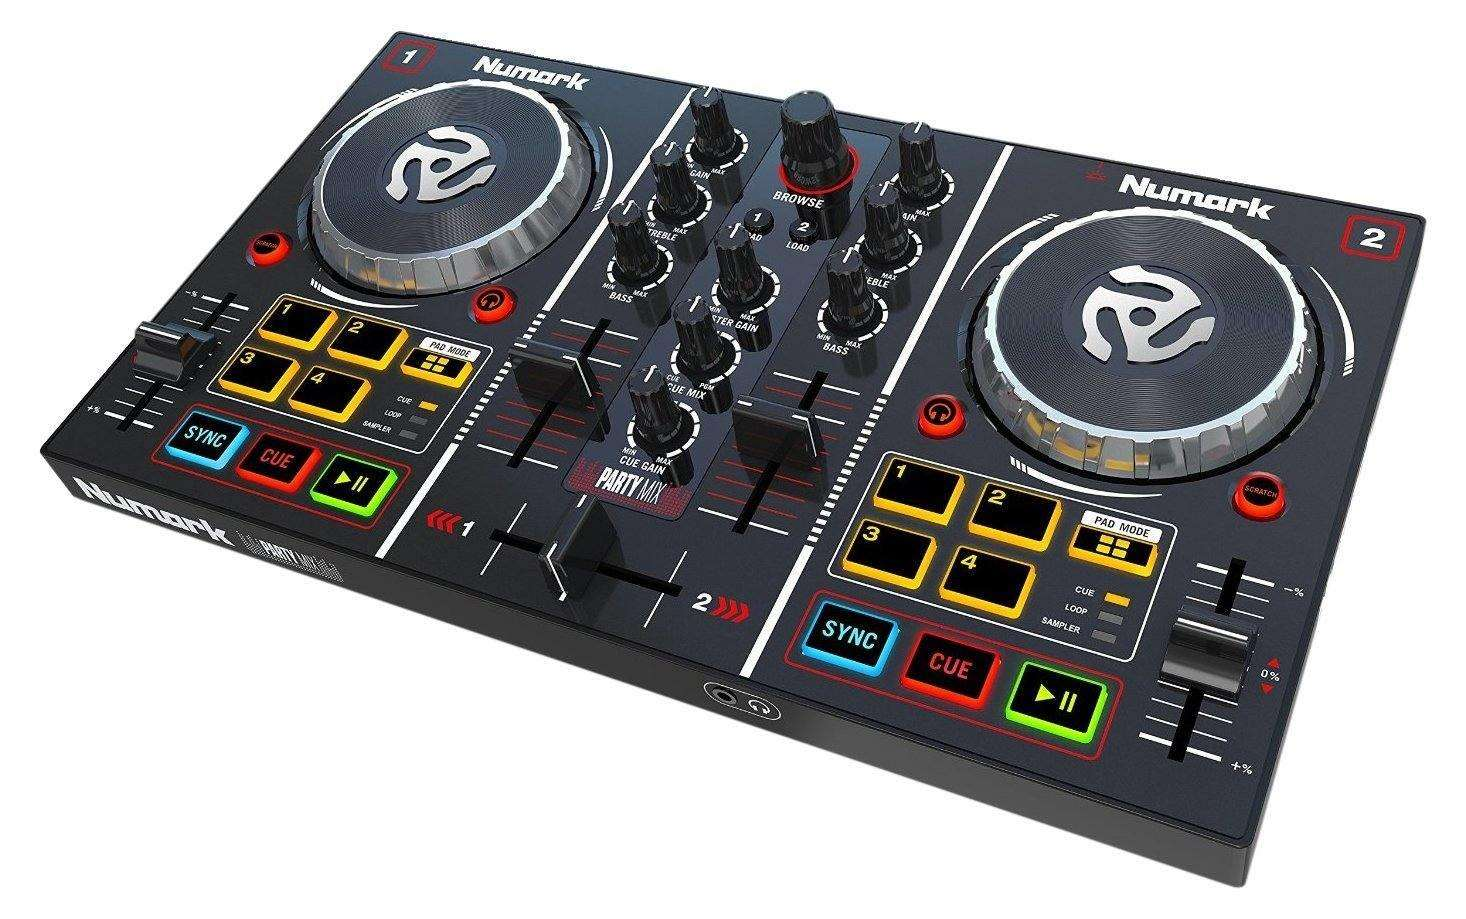 What are dads buying their kids for Christmas?, DJ kit%, product-review%